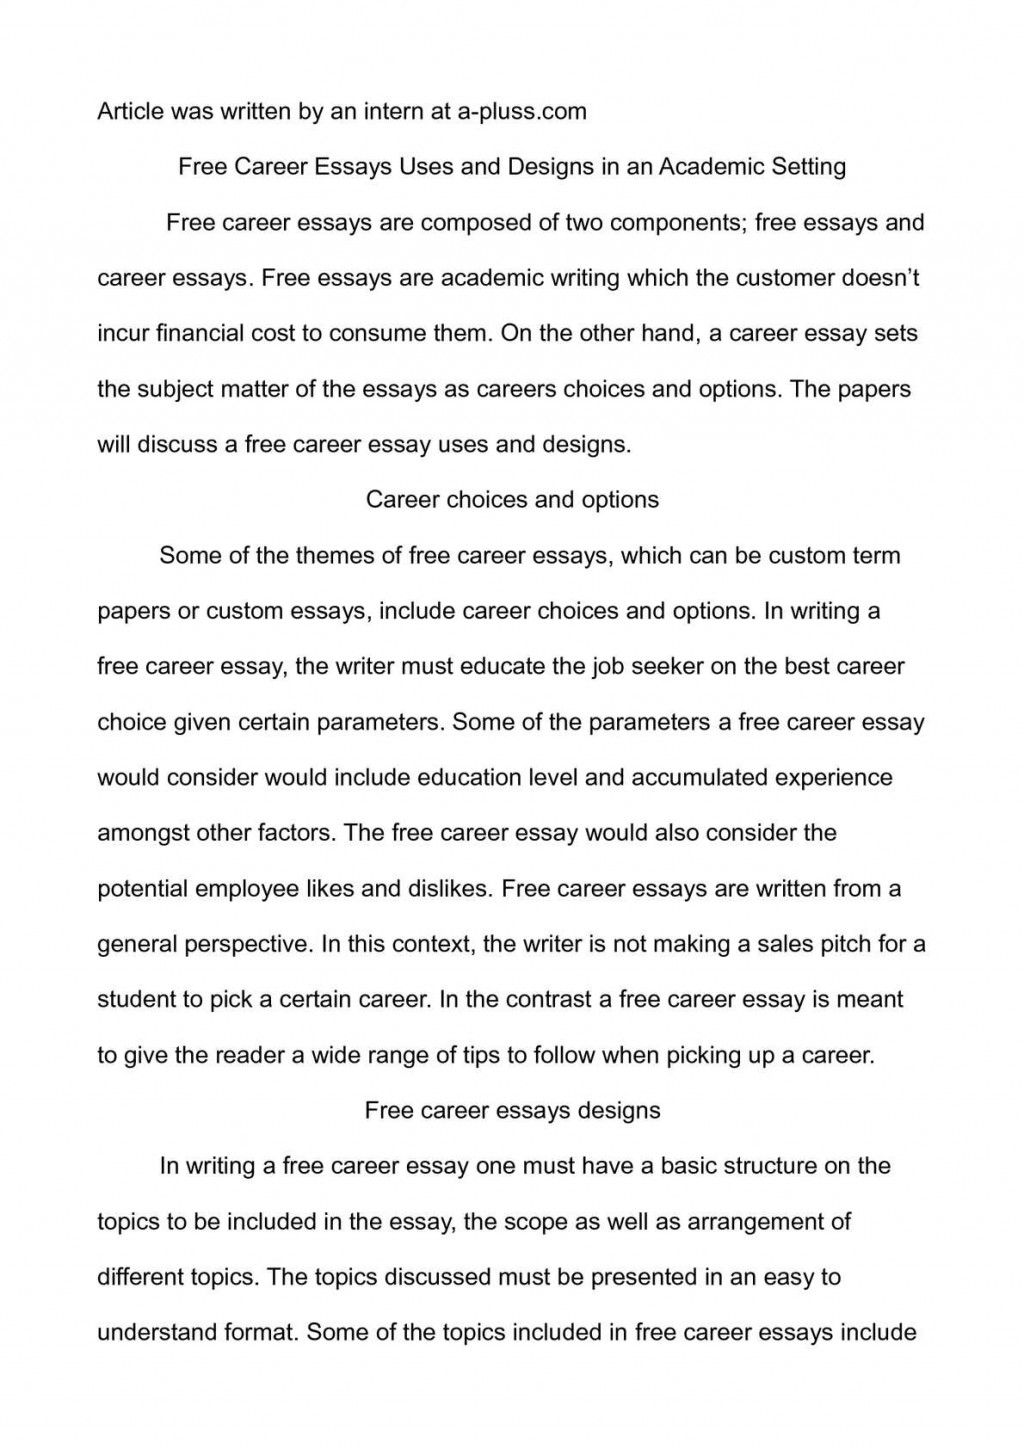 003 P1 Essay Example On Breathtaking Career Goals And Aspirations Sample Choosing A Path Large